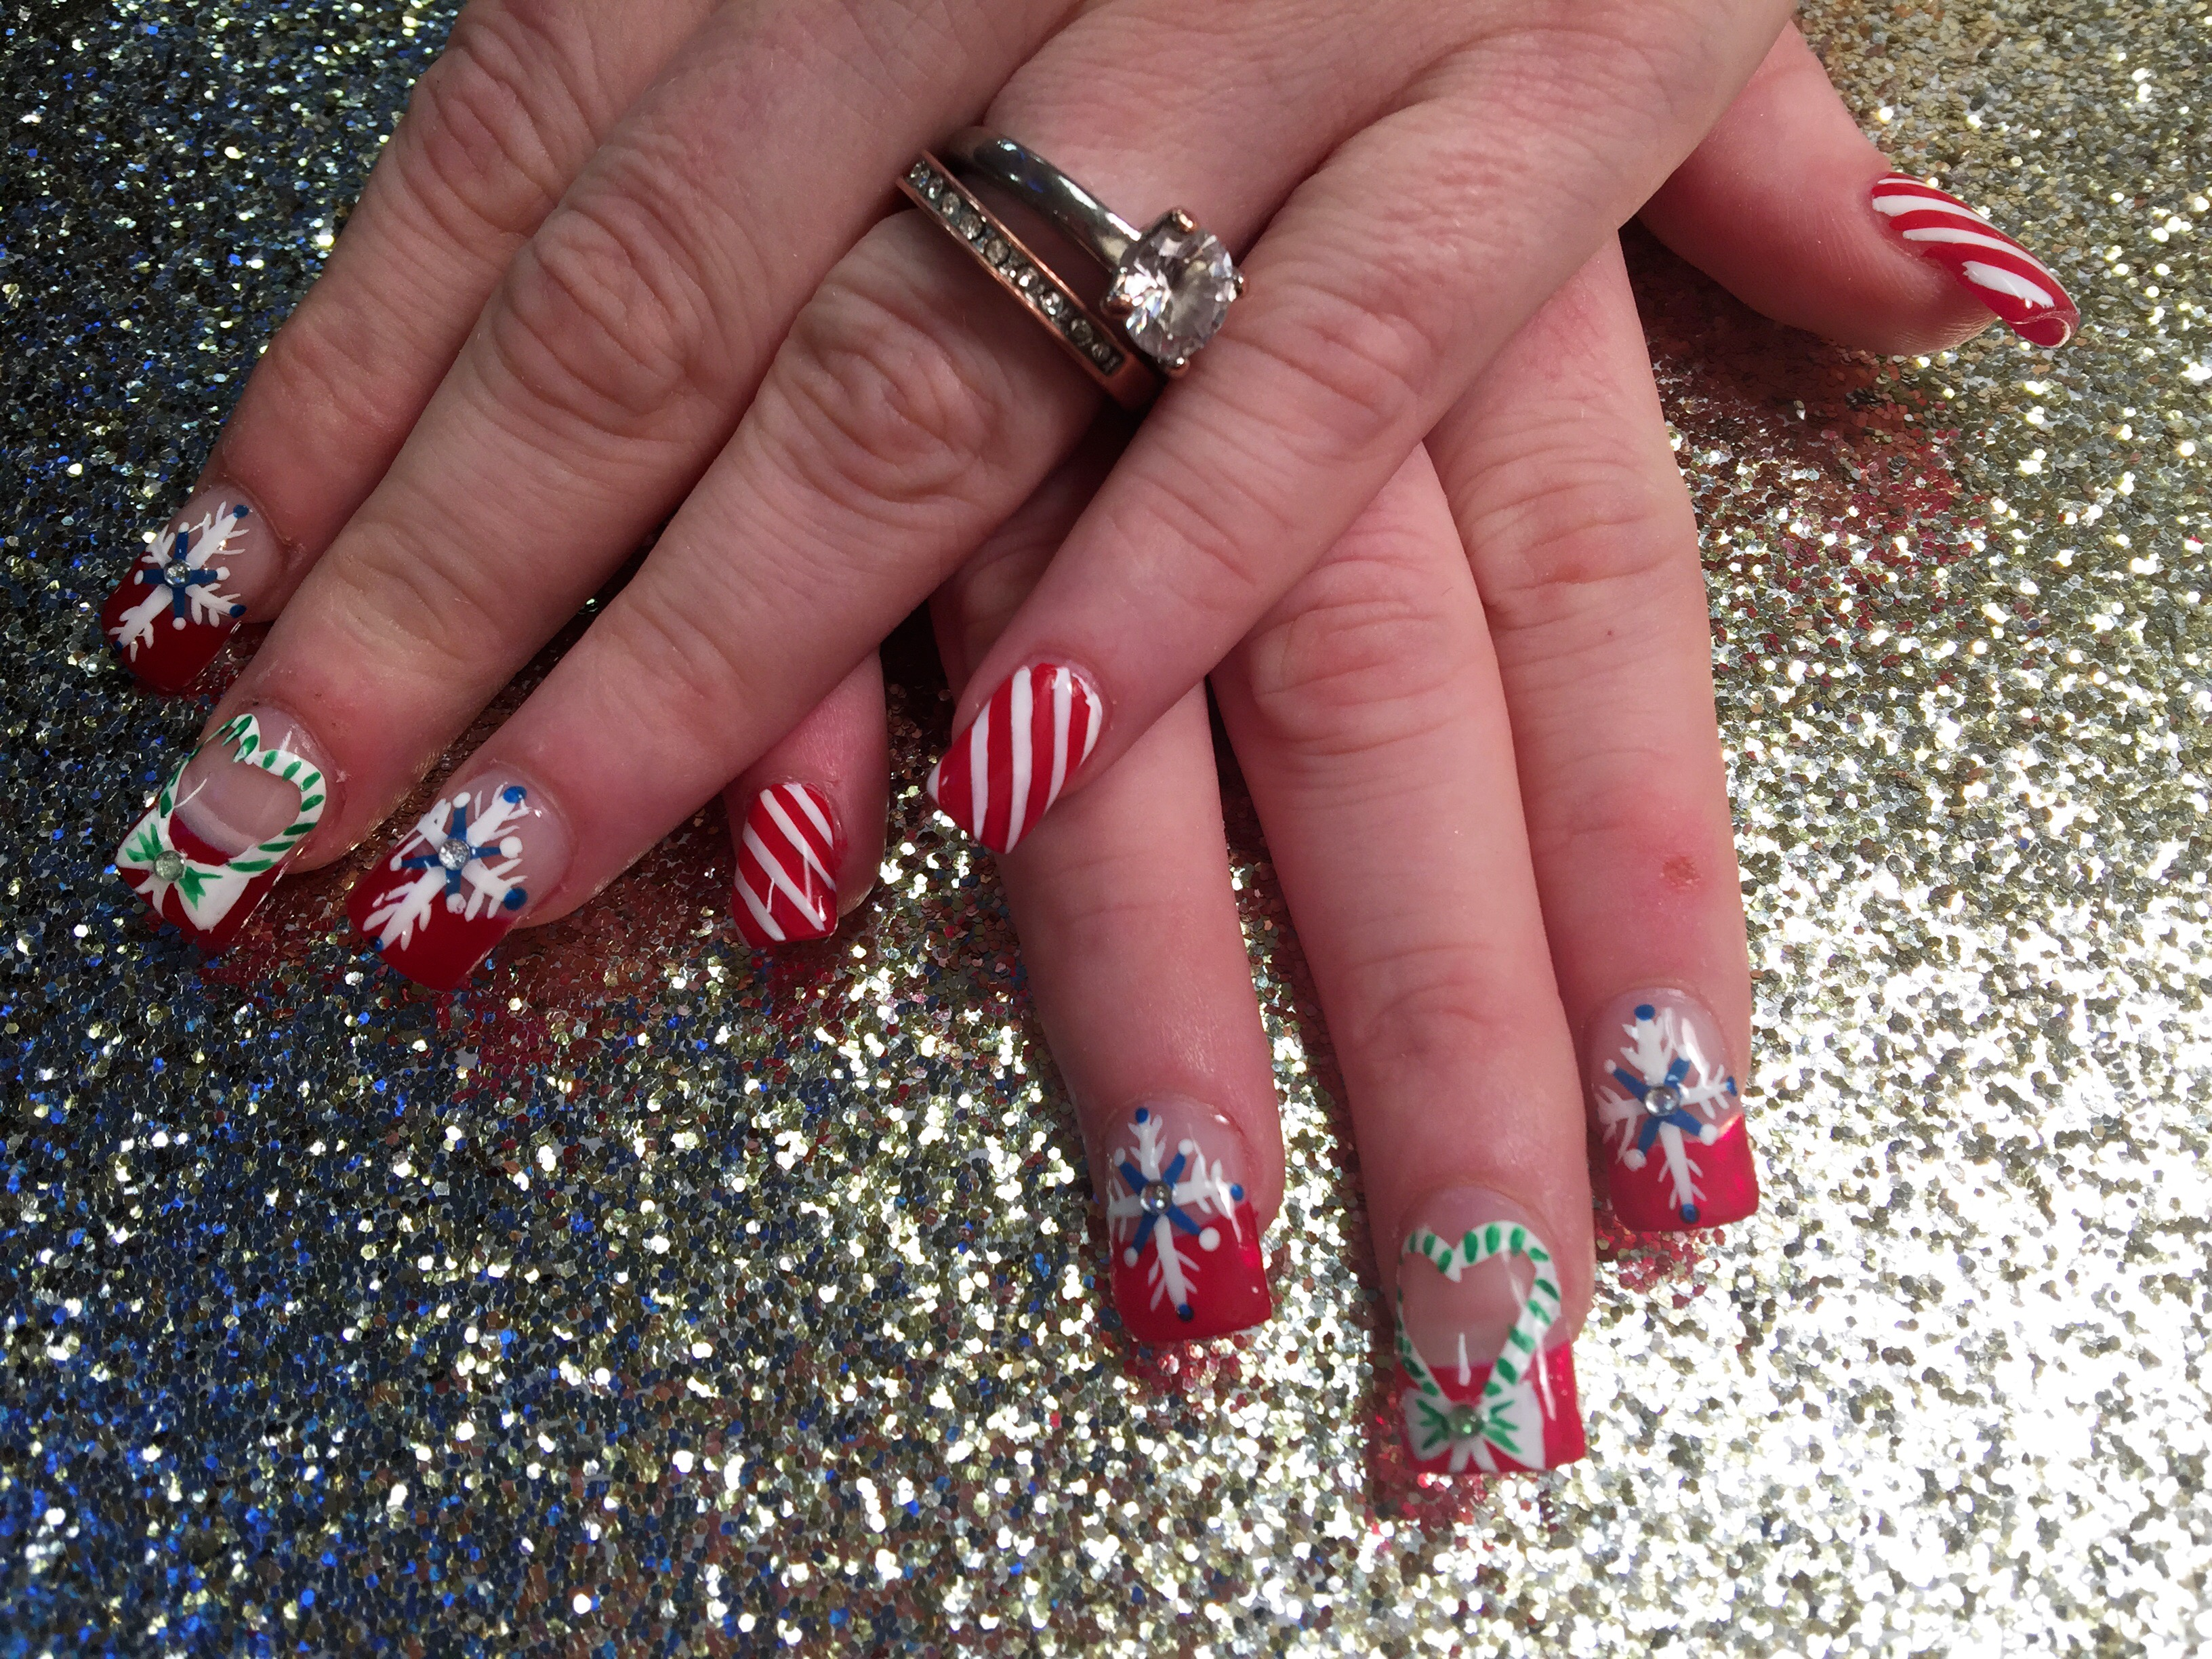 Christmas Spirit, nail art designs by Top Nails, Clarksville TN ...